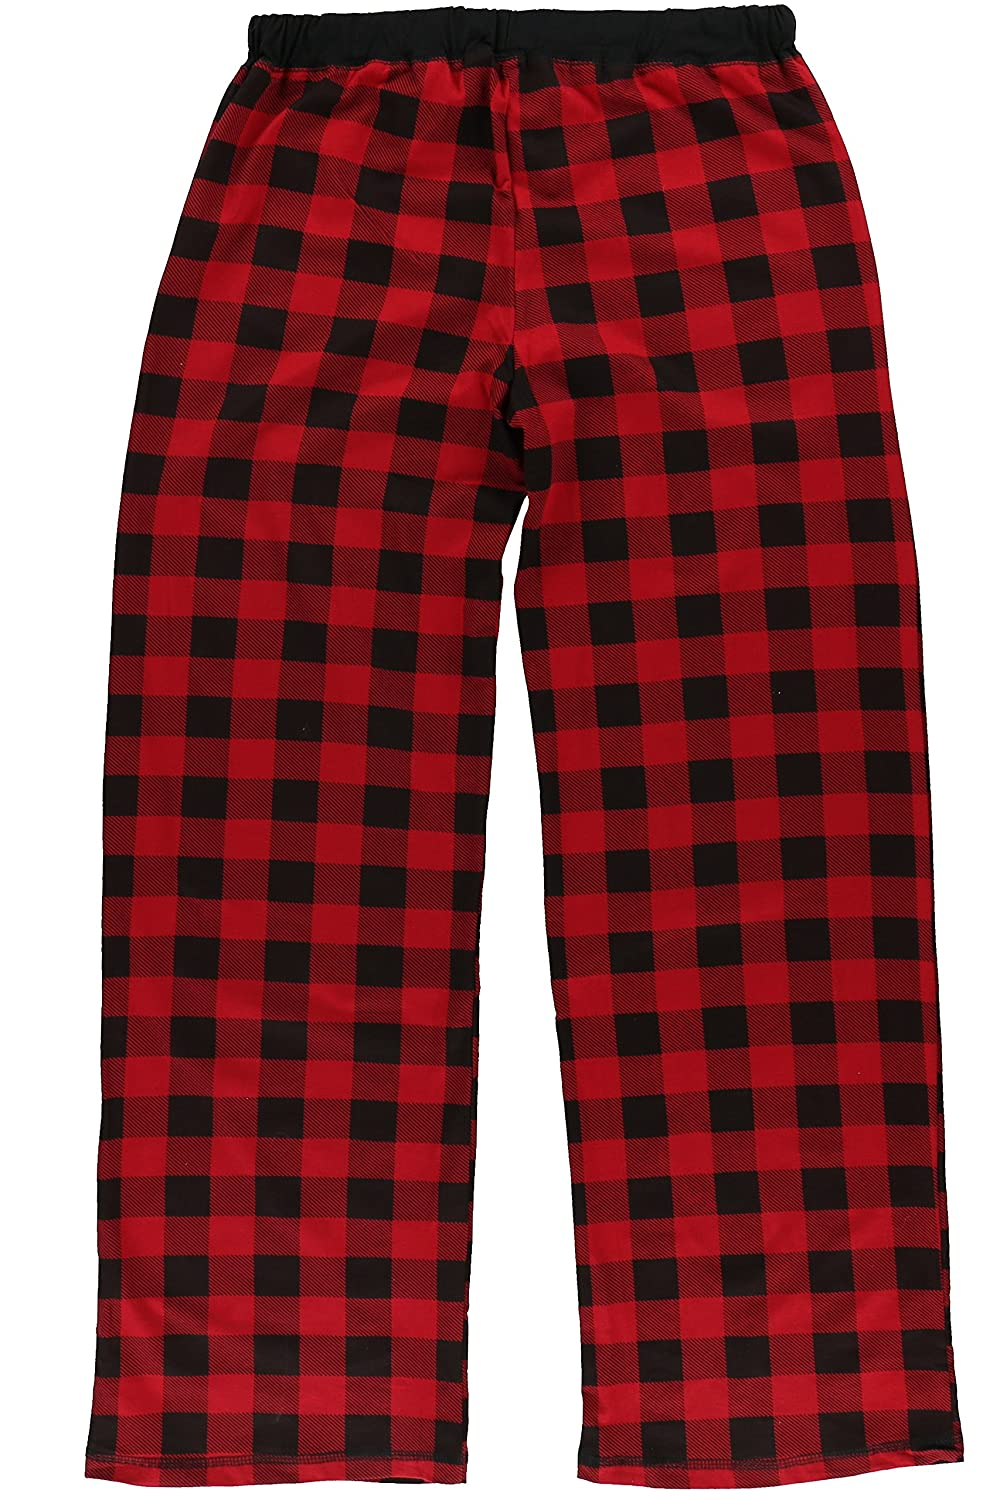 Amazon.com  Moose Plaid Men s Mens Pajama Pants Bottom by LazyOne ... 2f60b9b83